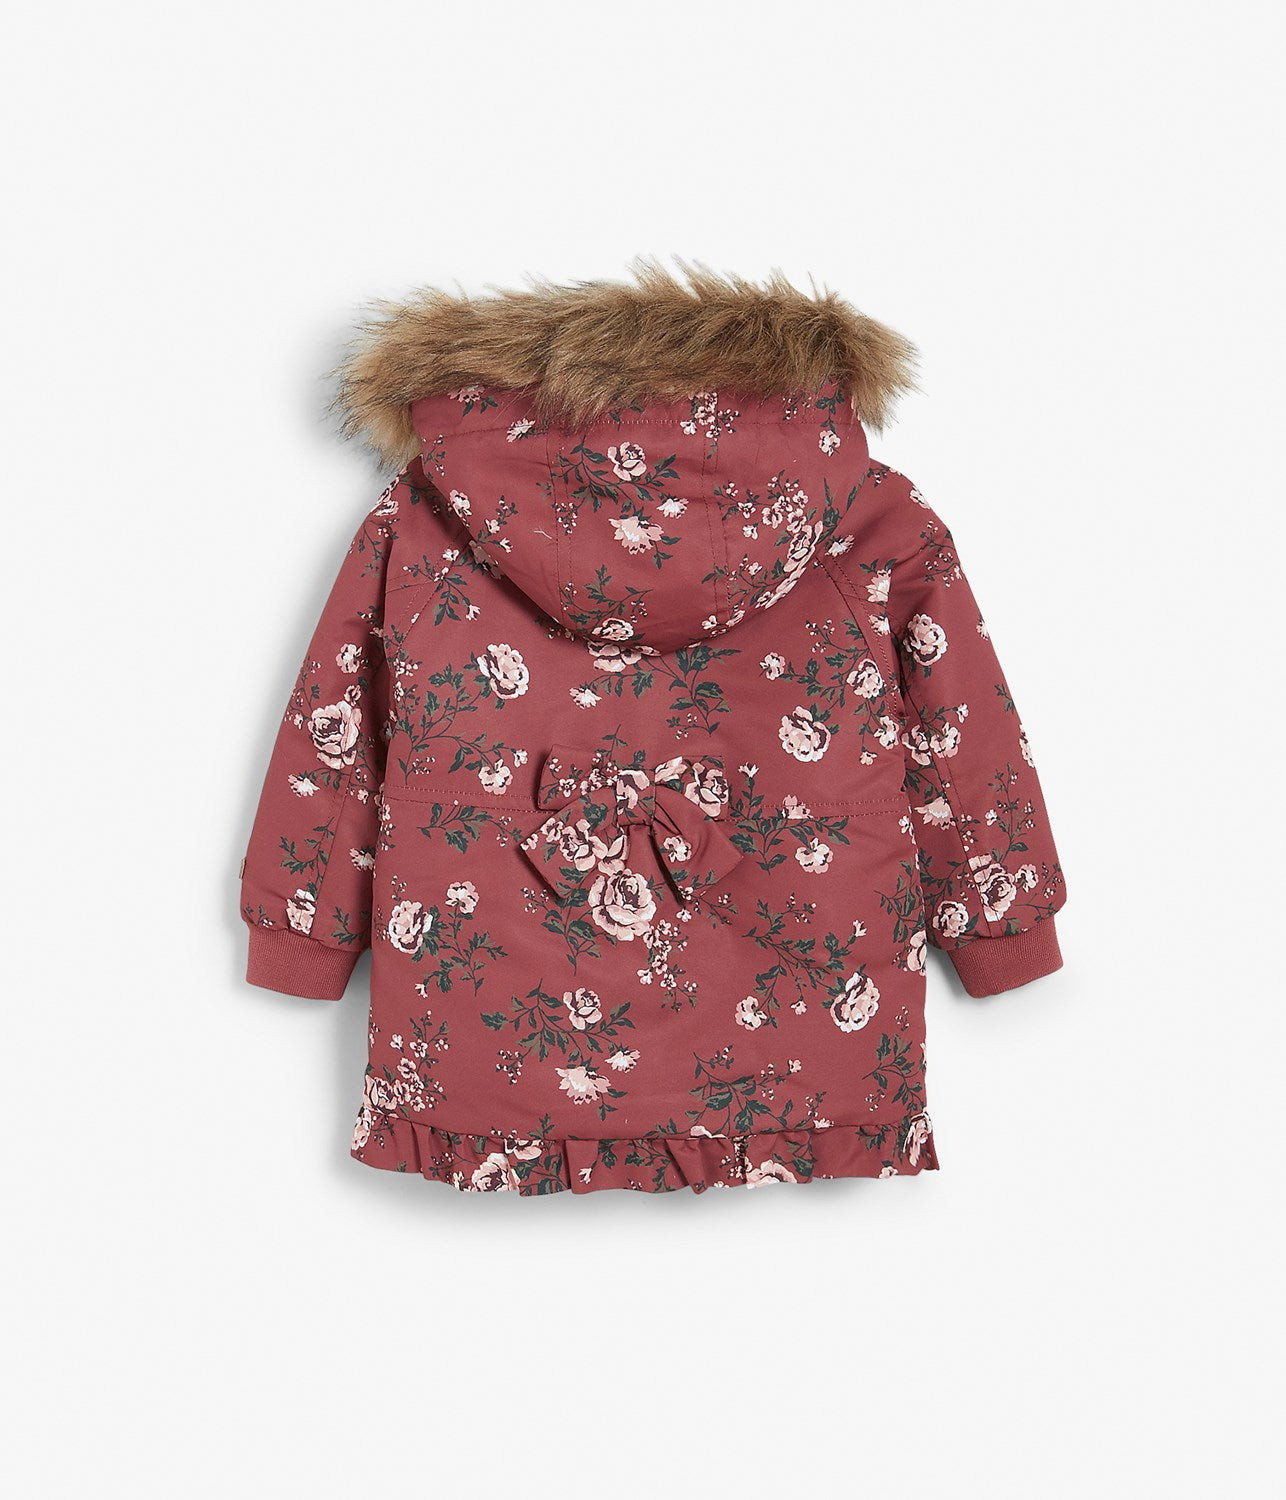 Baby rose floral print jacket with hood